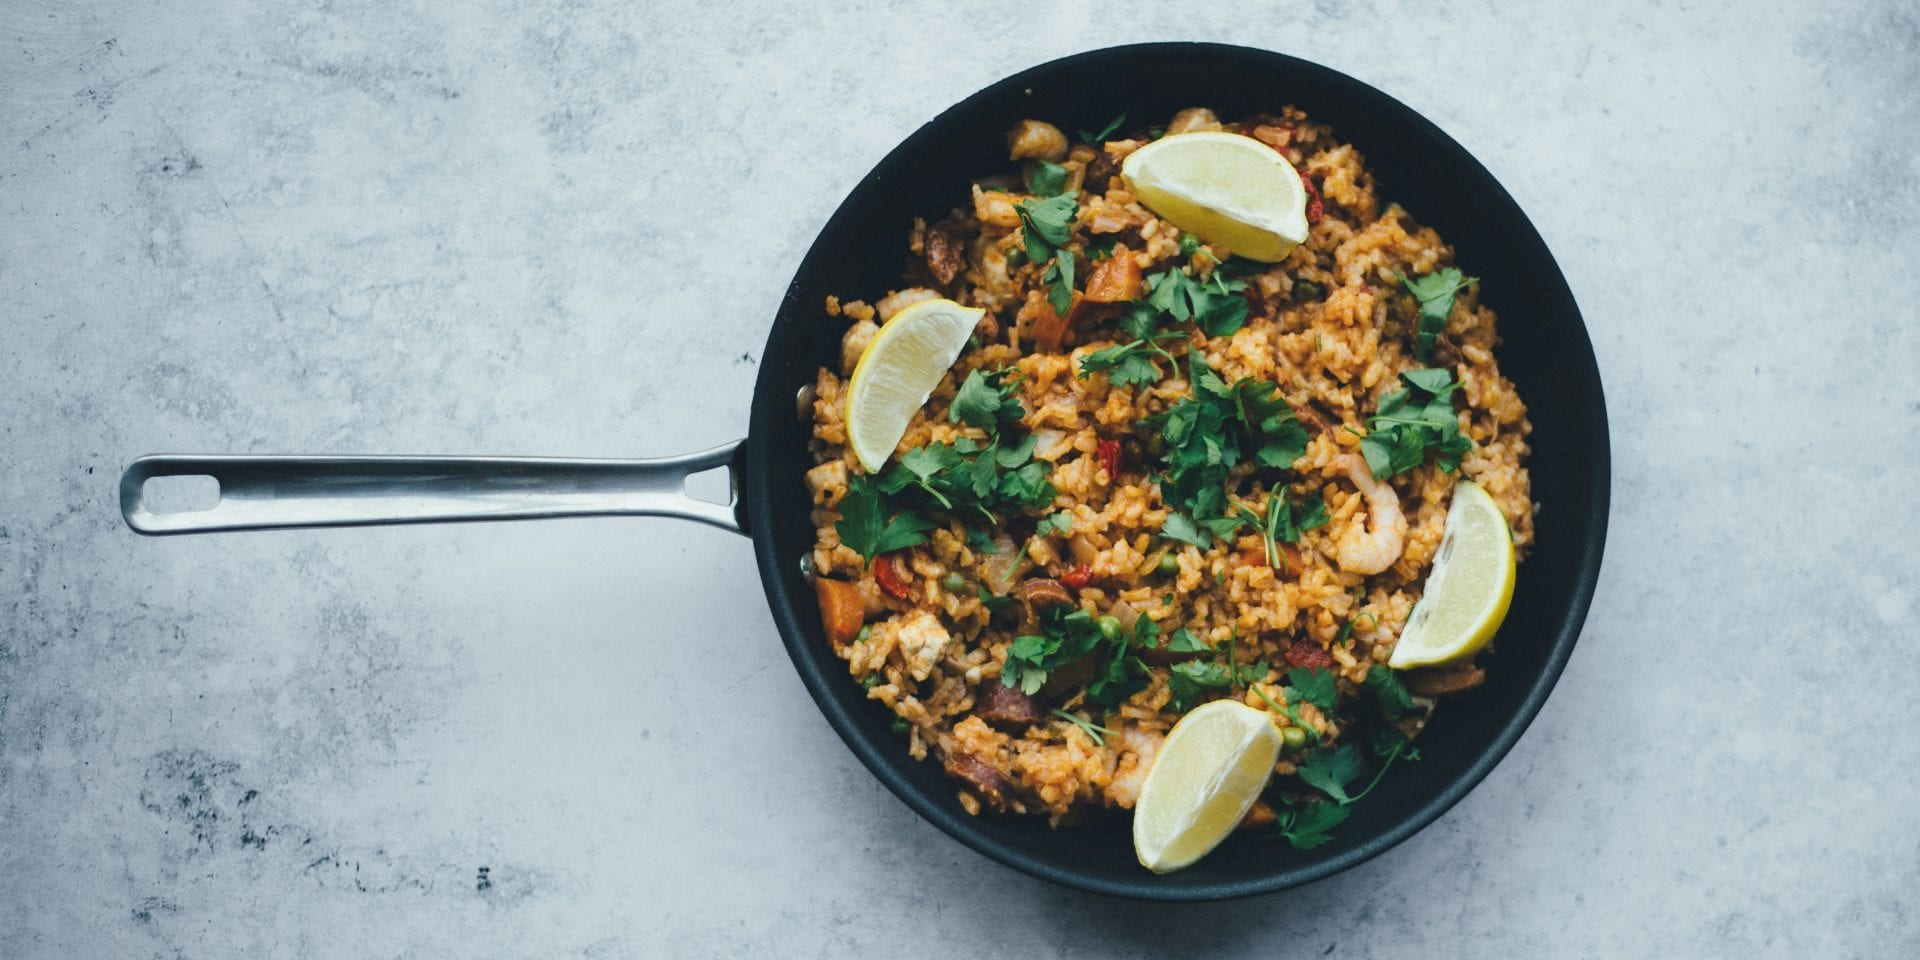 Paella dish with lemon and herbs – Nomad recruitment